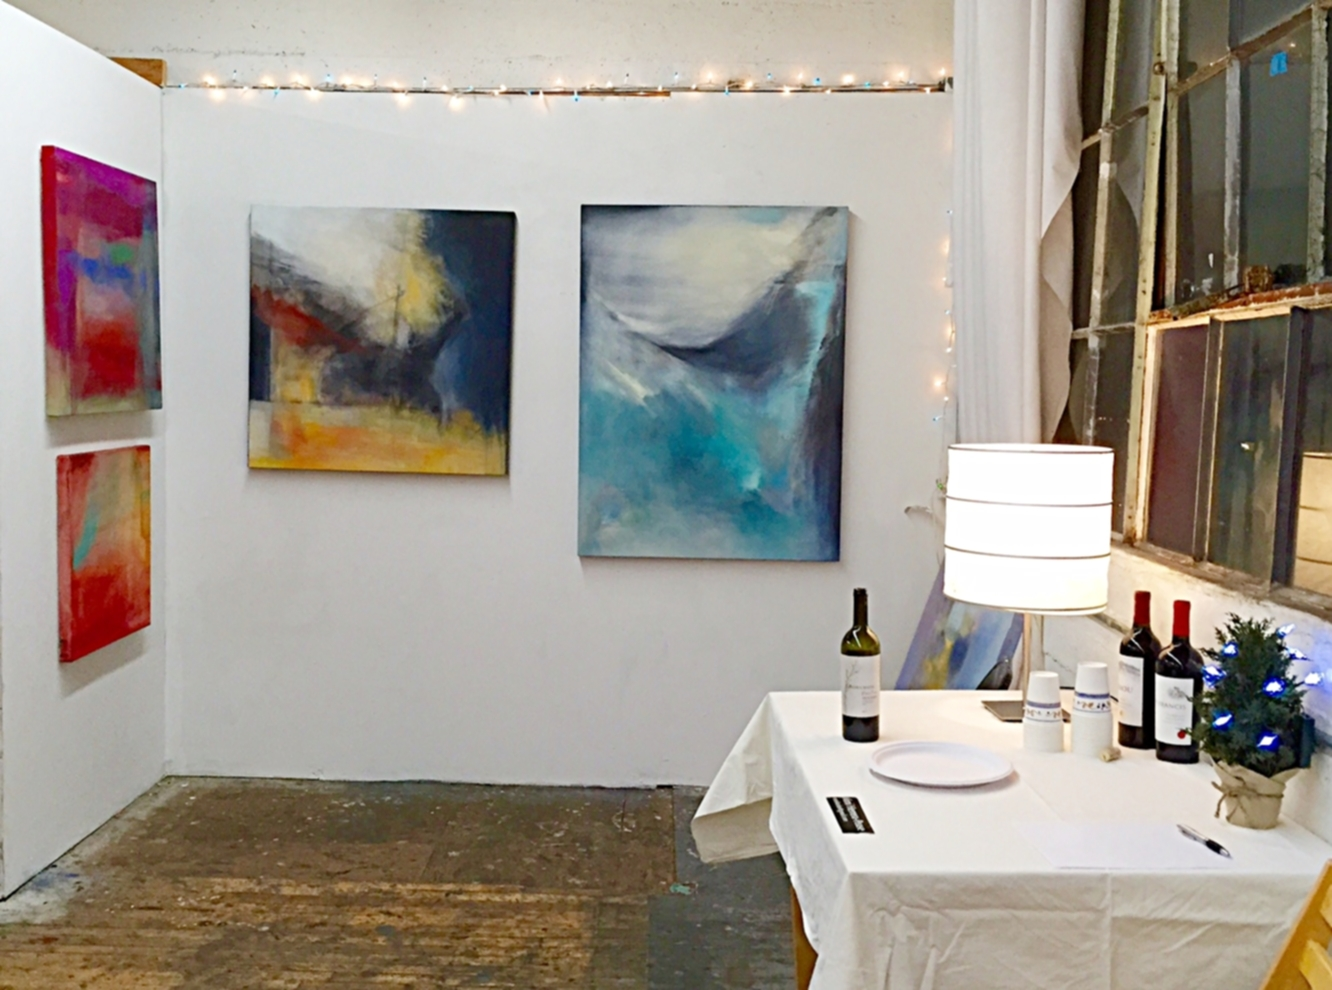 Previous studio on the 3rd floor at Art Explosion's Holiday Show. December 7, 2015